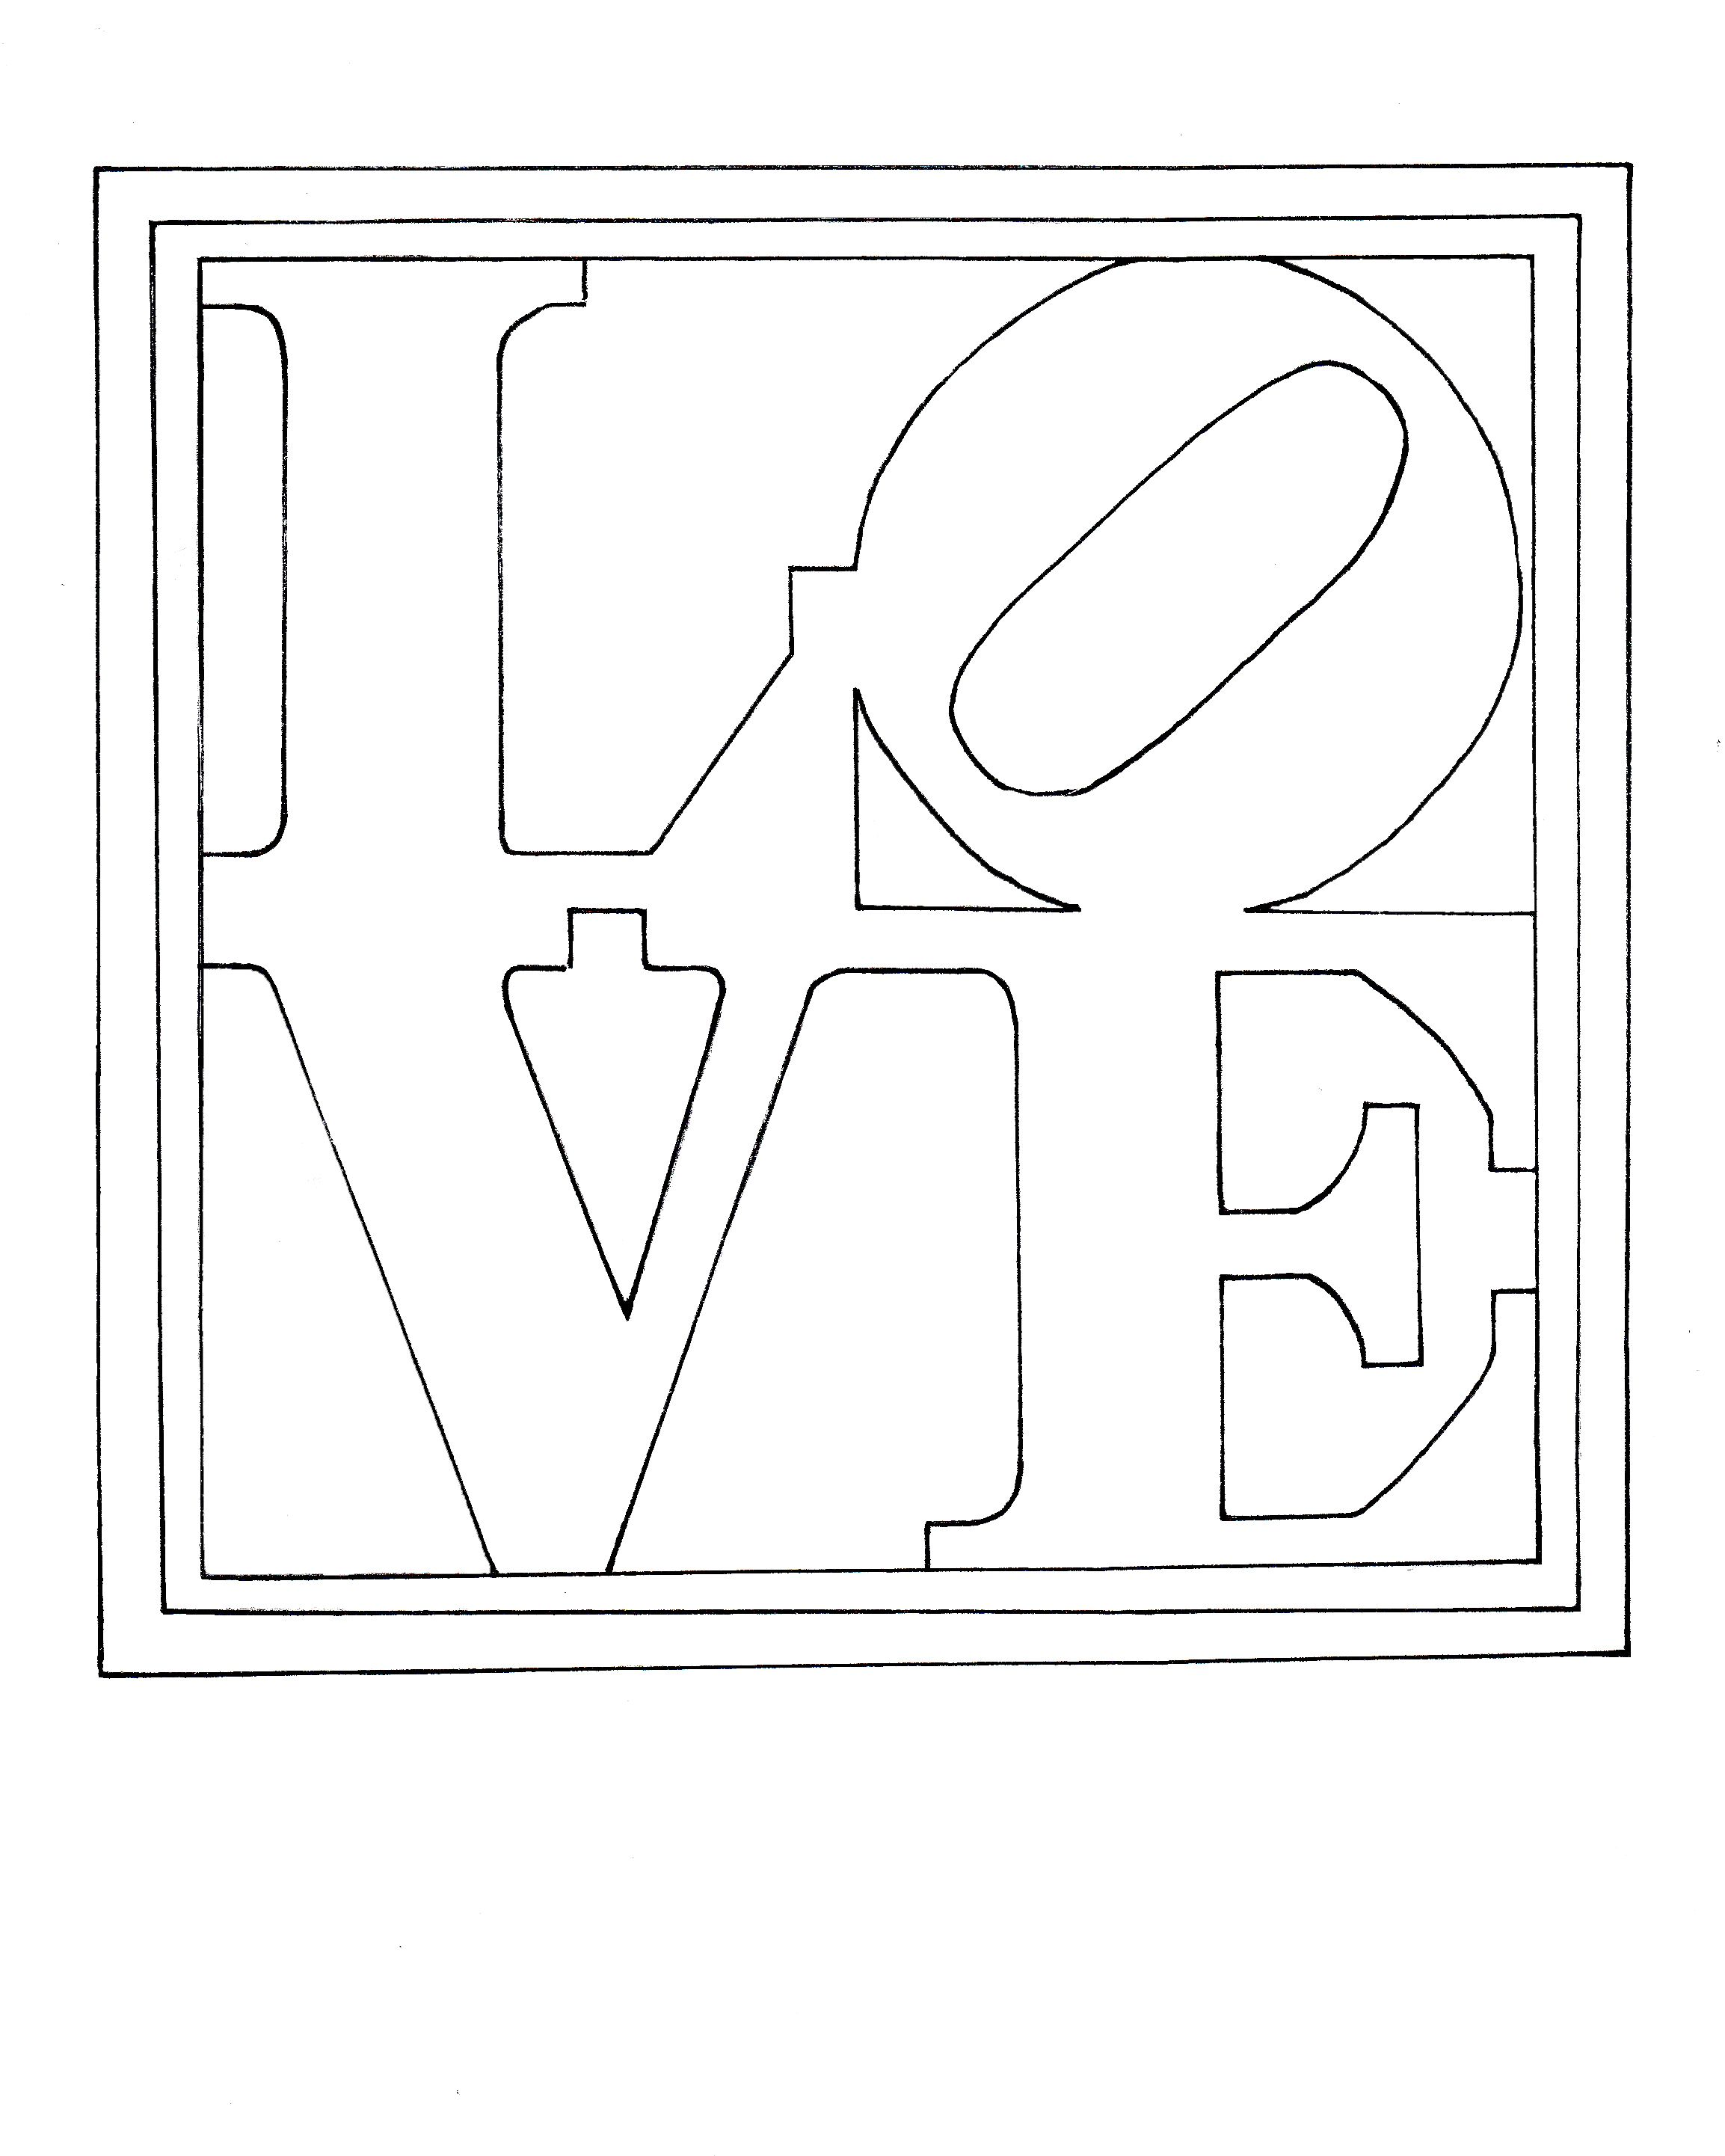 Colouring Page Of Robert Indiana S Famous Painting